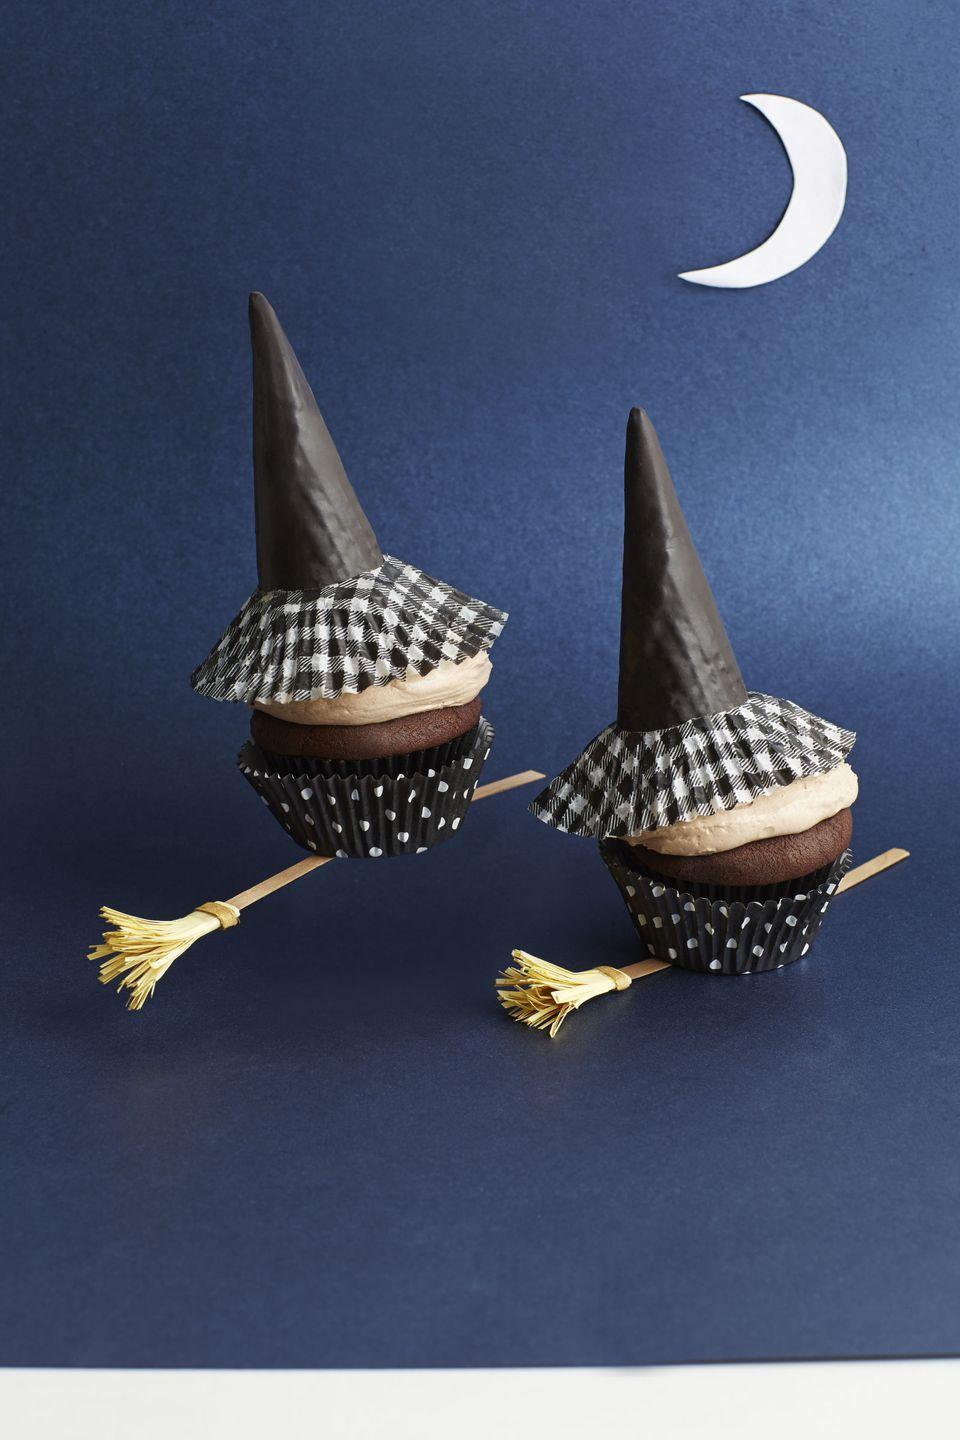 """<p>This chocolate and pumpkin cupcake is only enhanced by the magical witches hat and broom that let you know you're in for a mystical night. </p><p><a href=""""https://www.womansday.com/food-recipes/food-drinks/recipes/a40351/chocolate-pumpkin-witch-cupcakes-recipe-clx1014/"""" rel=""""nofollow noopener"""" target=""""_blank"""" data-ylk=""""slk:Get the Chocolate Pumpkin Witch Cupcakes recipe."""" class=""""link rapid-noclick-resp""""><em>Get the Chocolate Pumpkin Witch Cupcakes recipe.</em></a> </p>"""